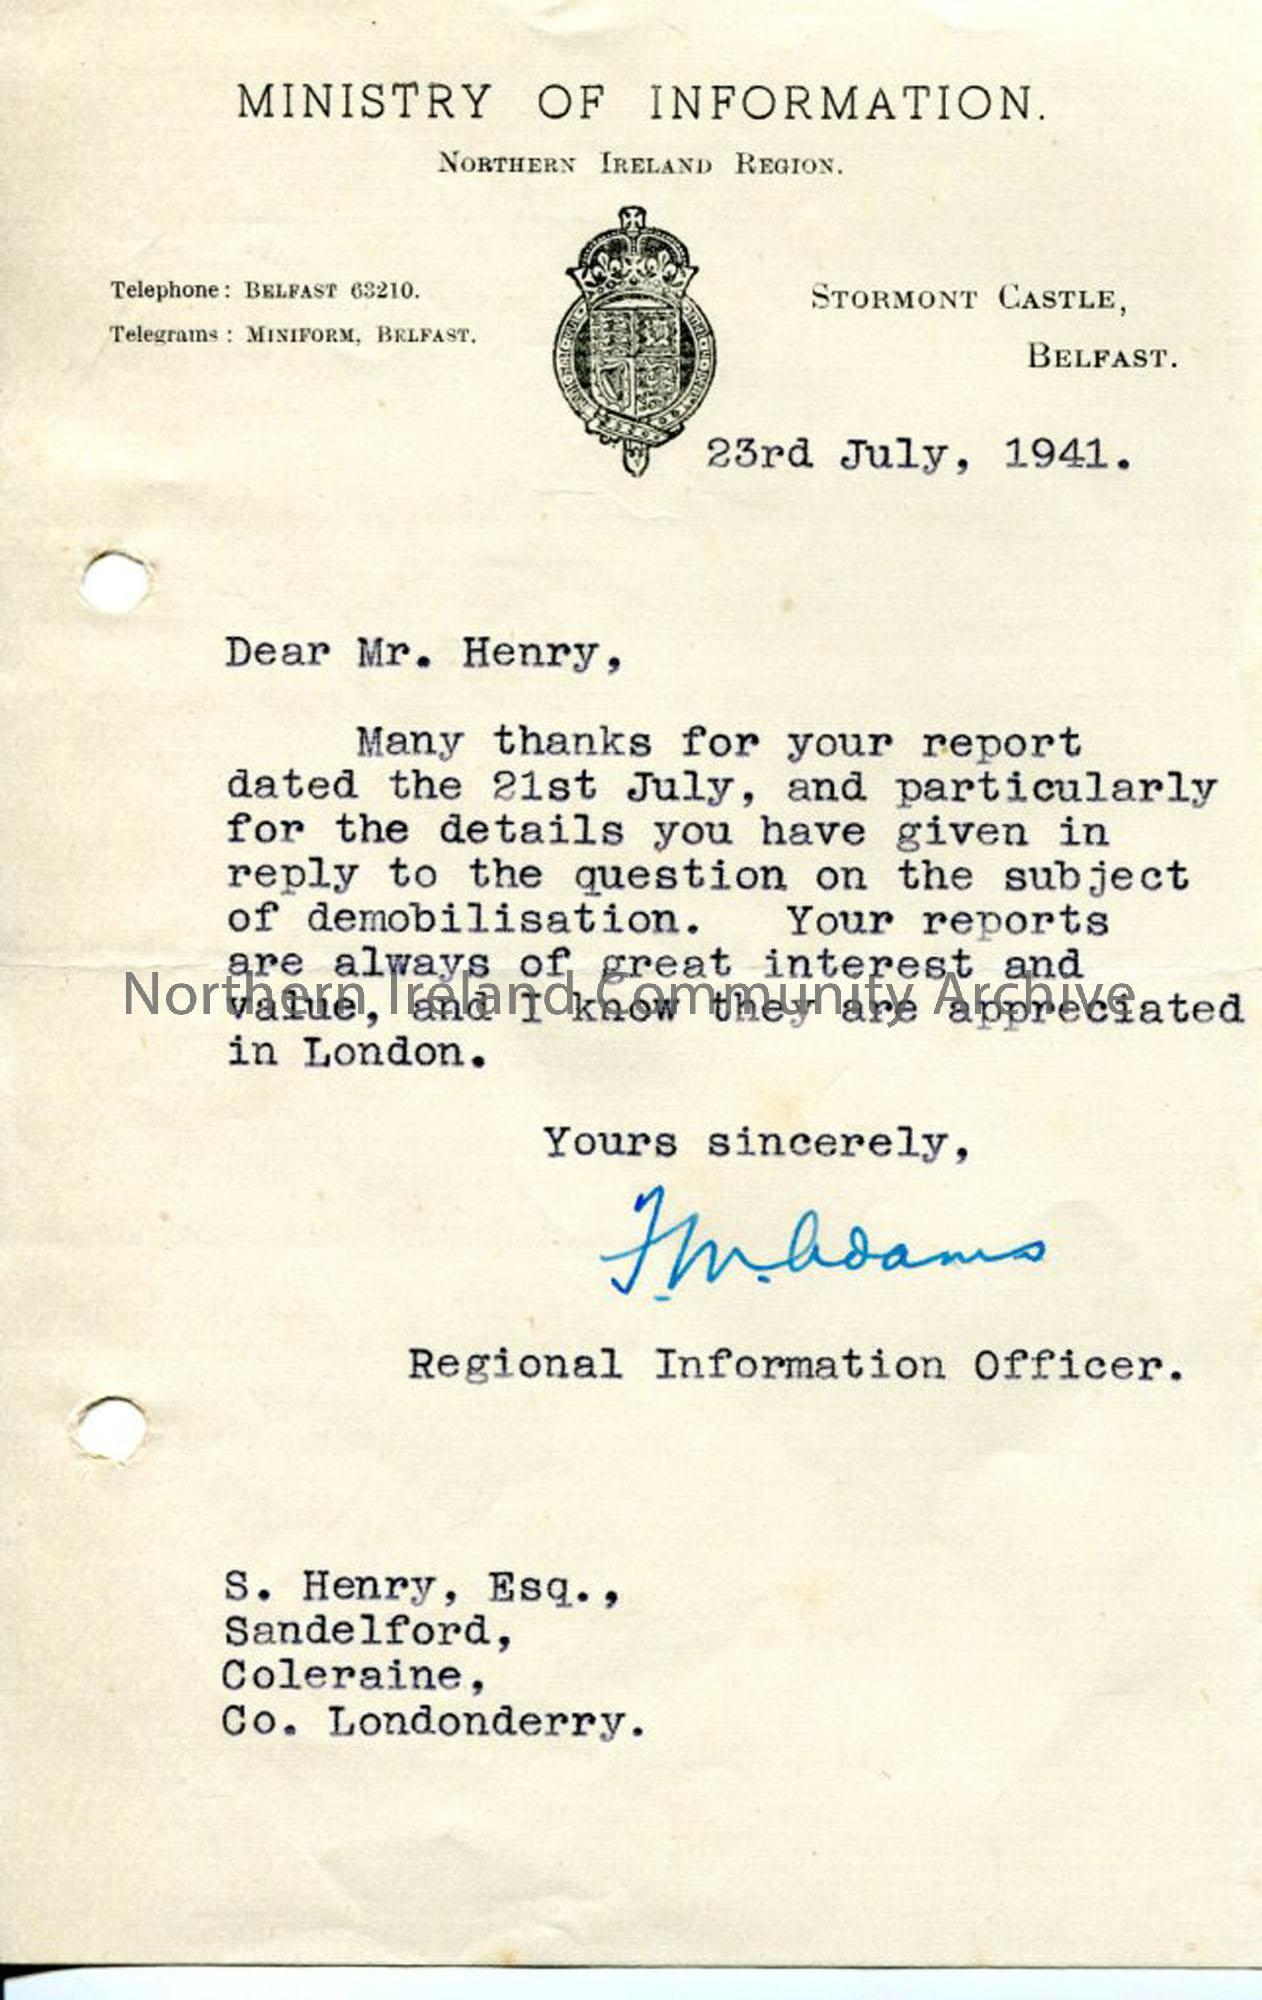 Letter from Ministry of Information to Sam Henry